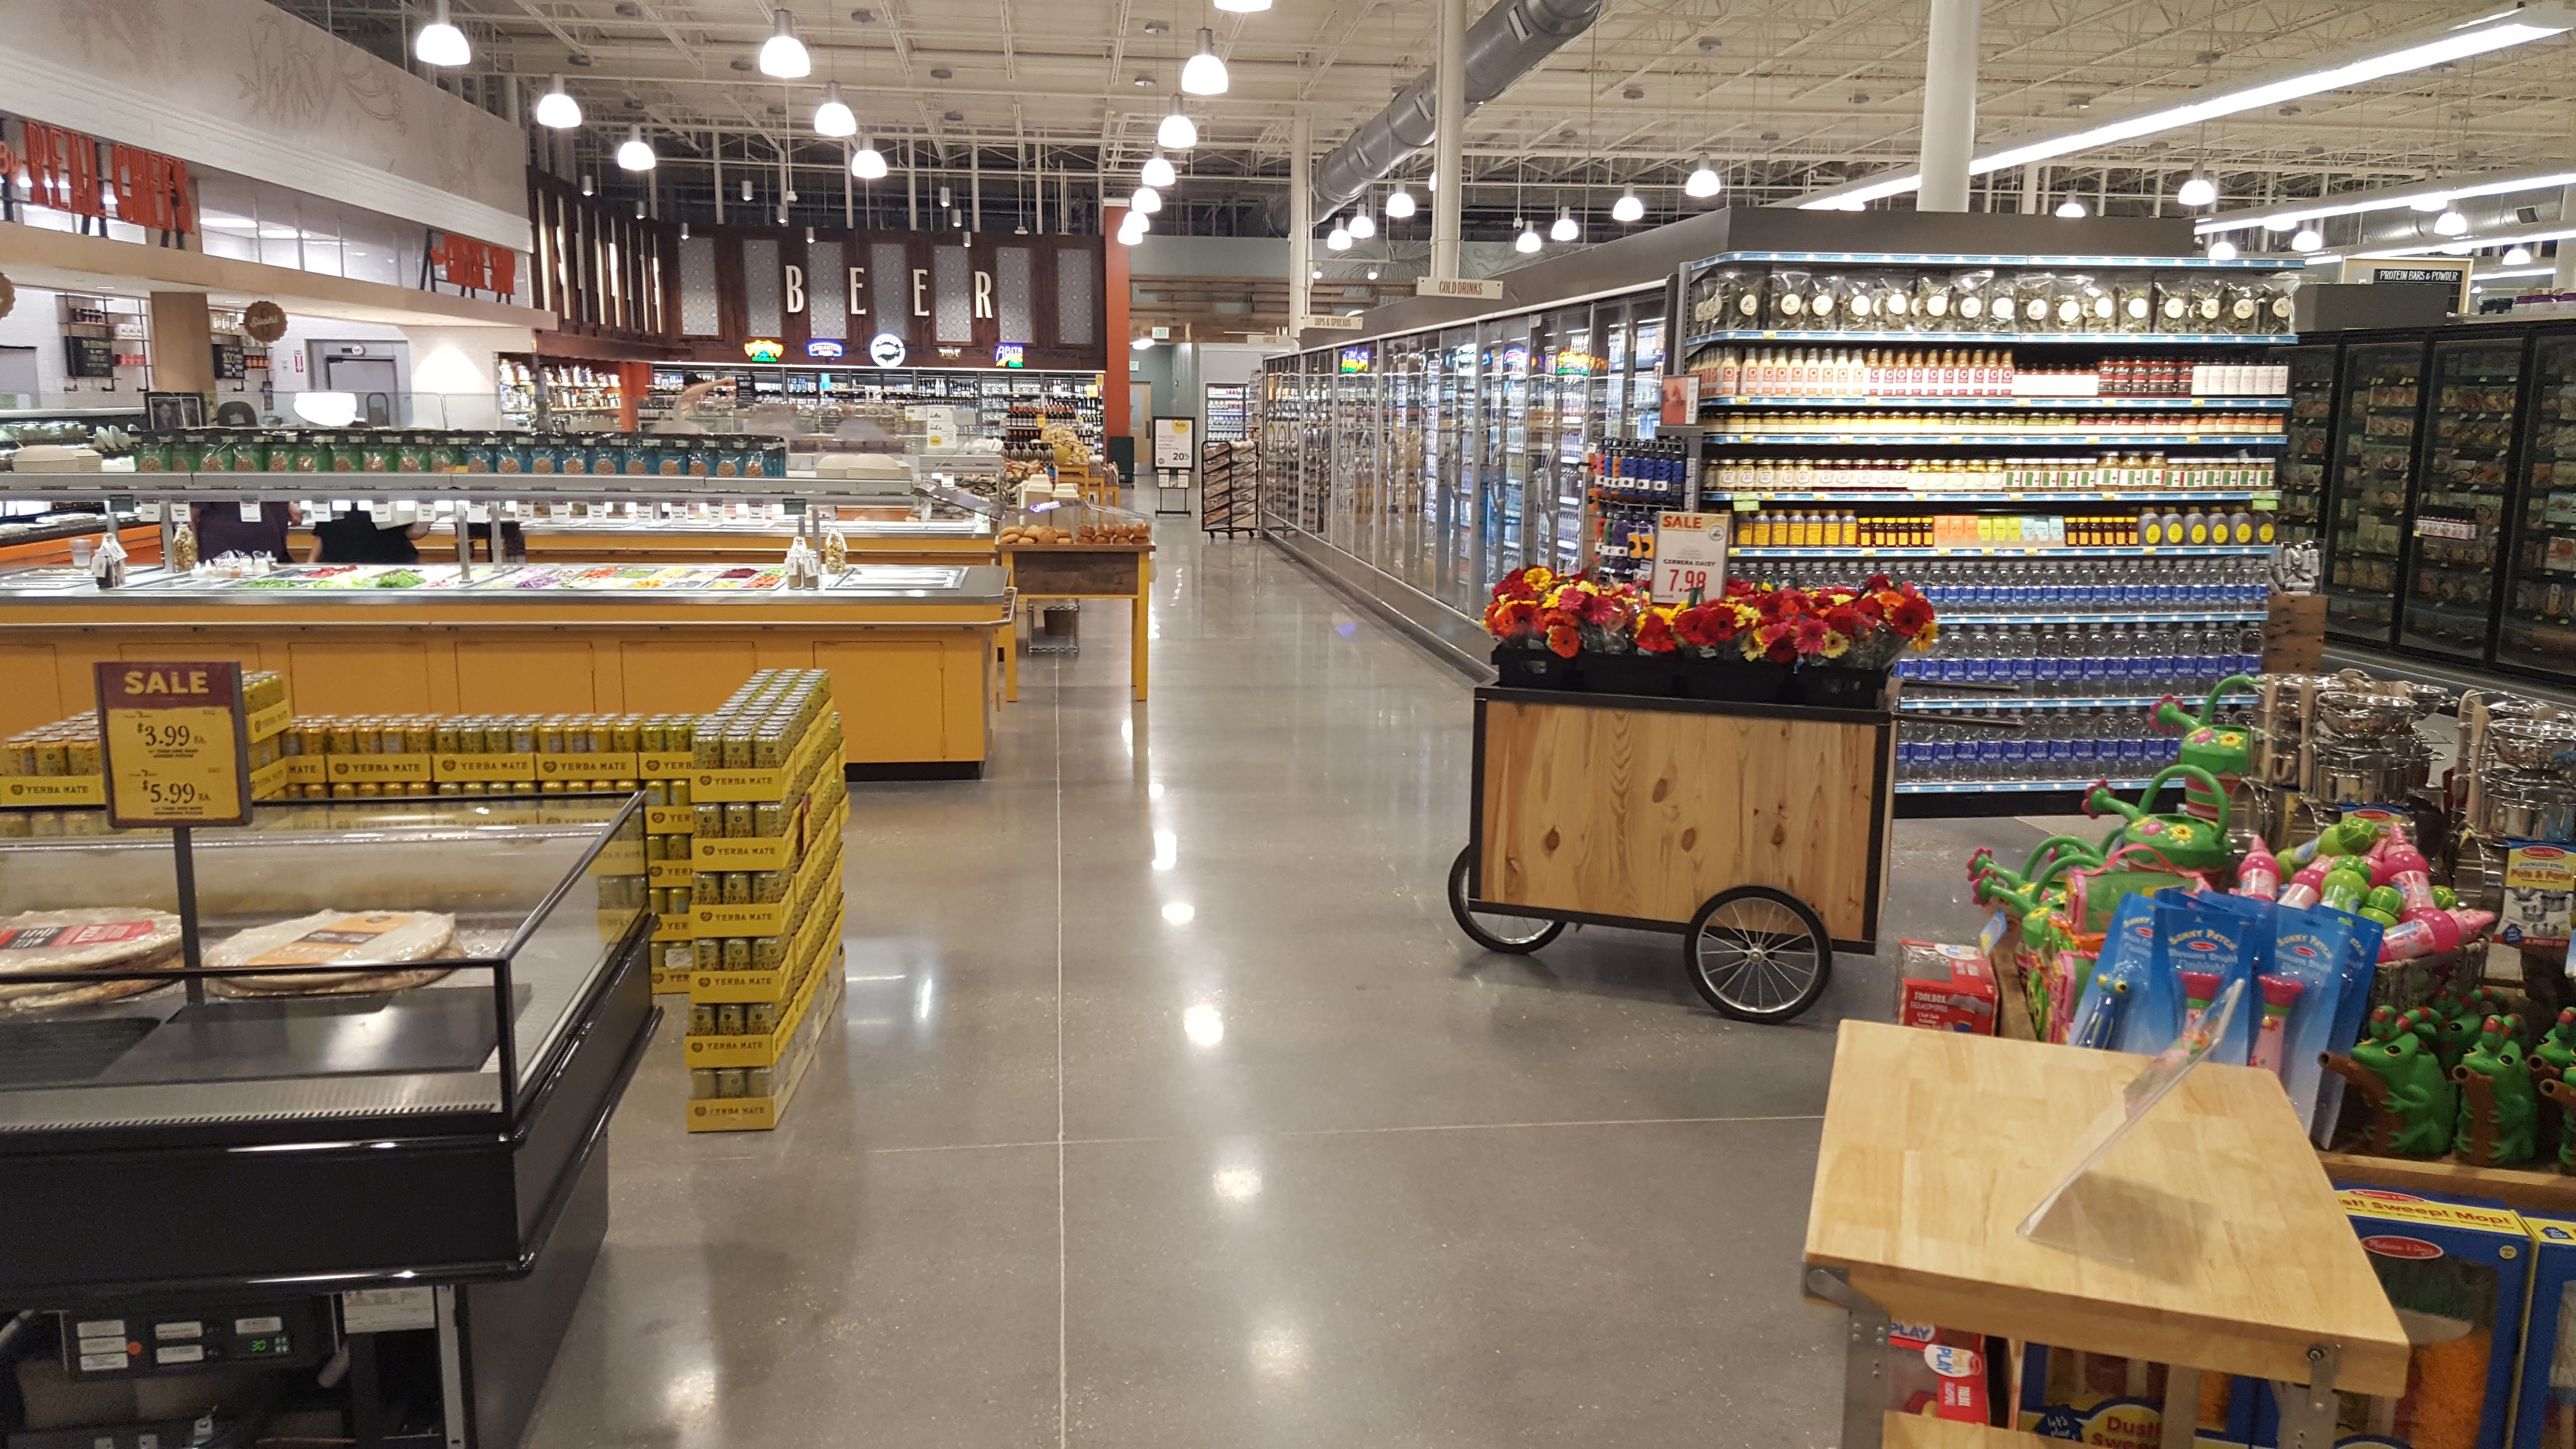 Grocery Store Commercial Janitorial Services Houston, TX